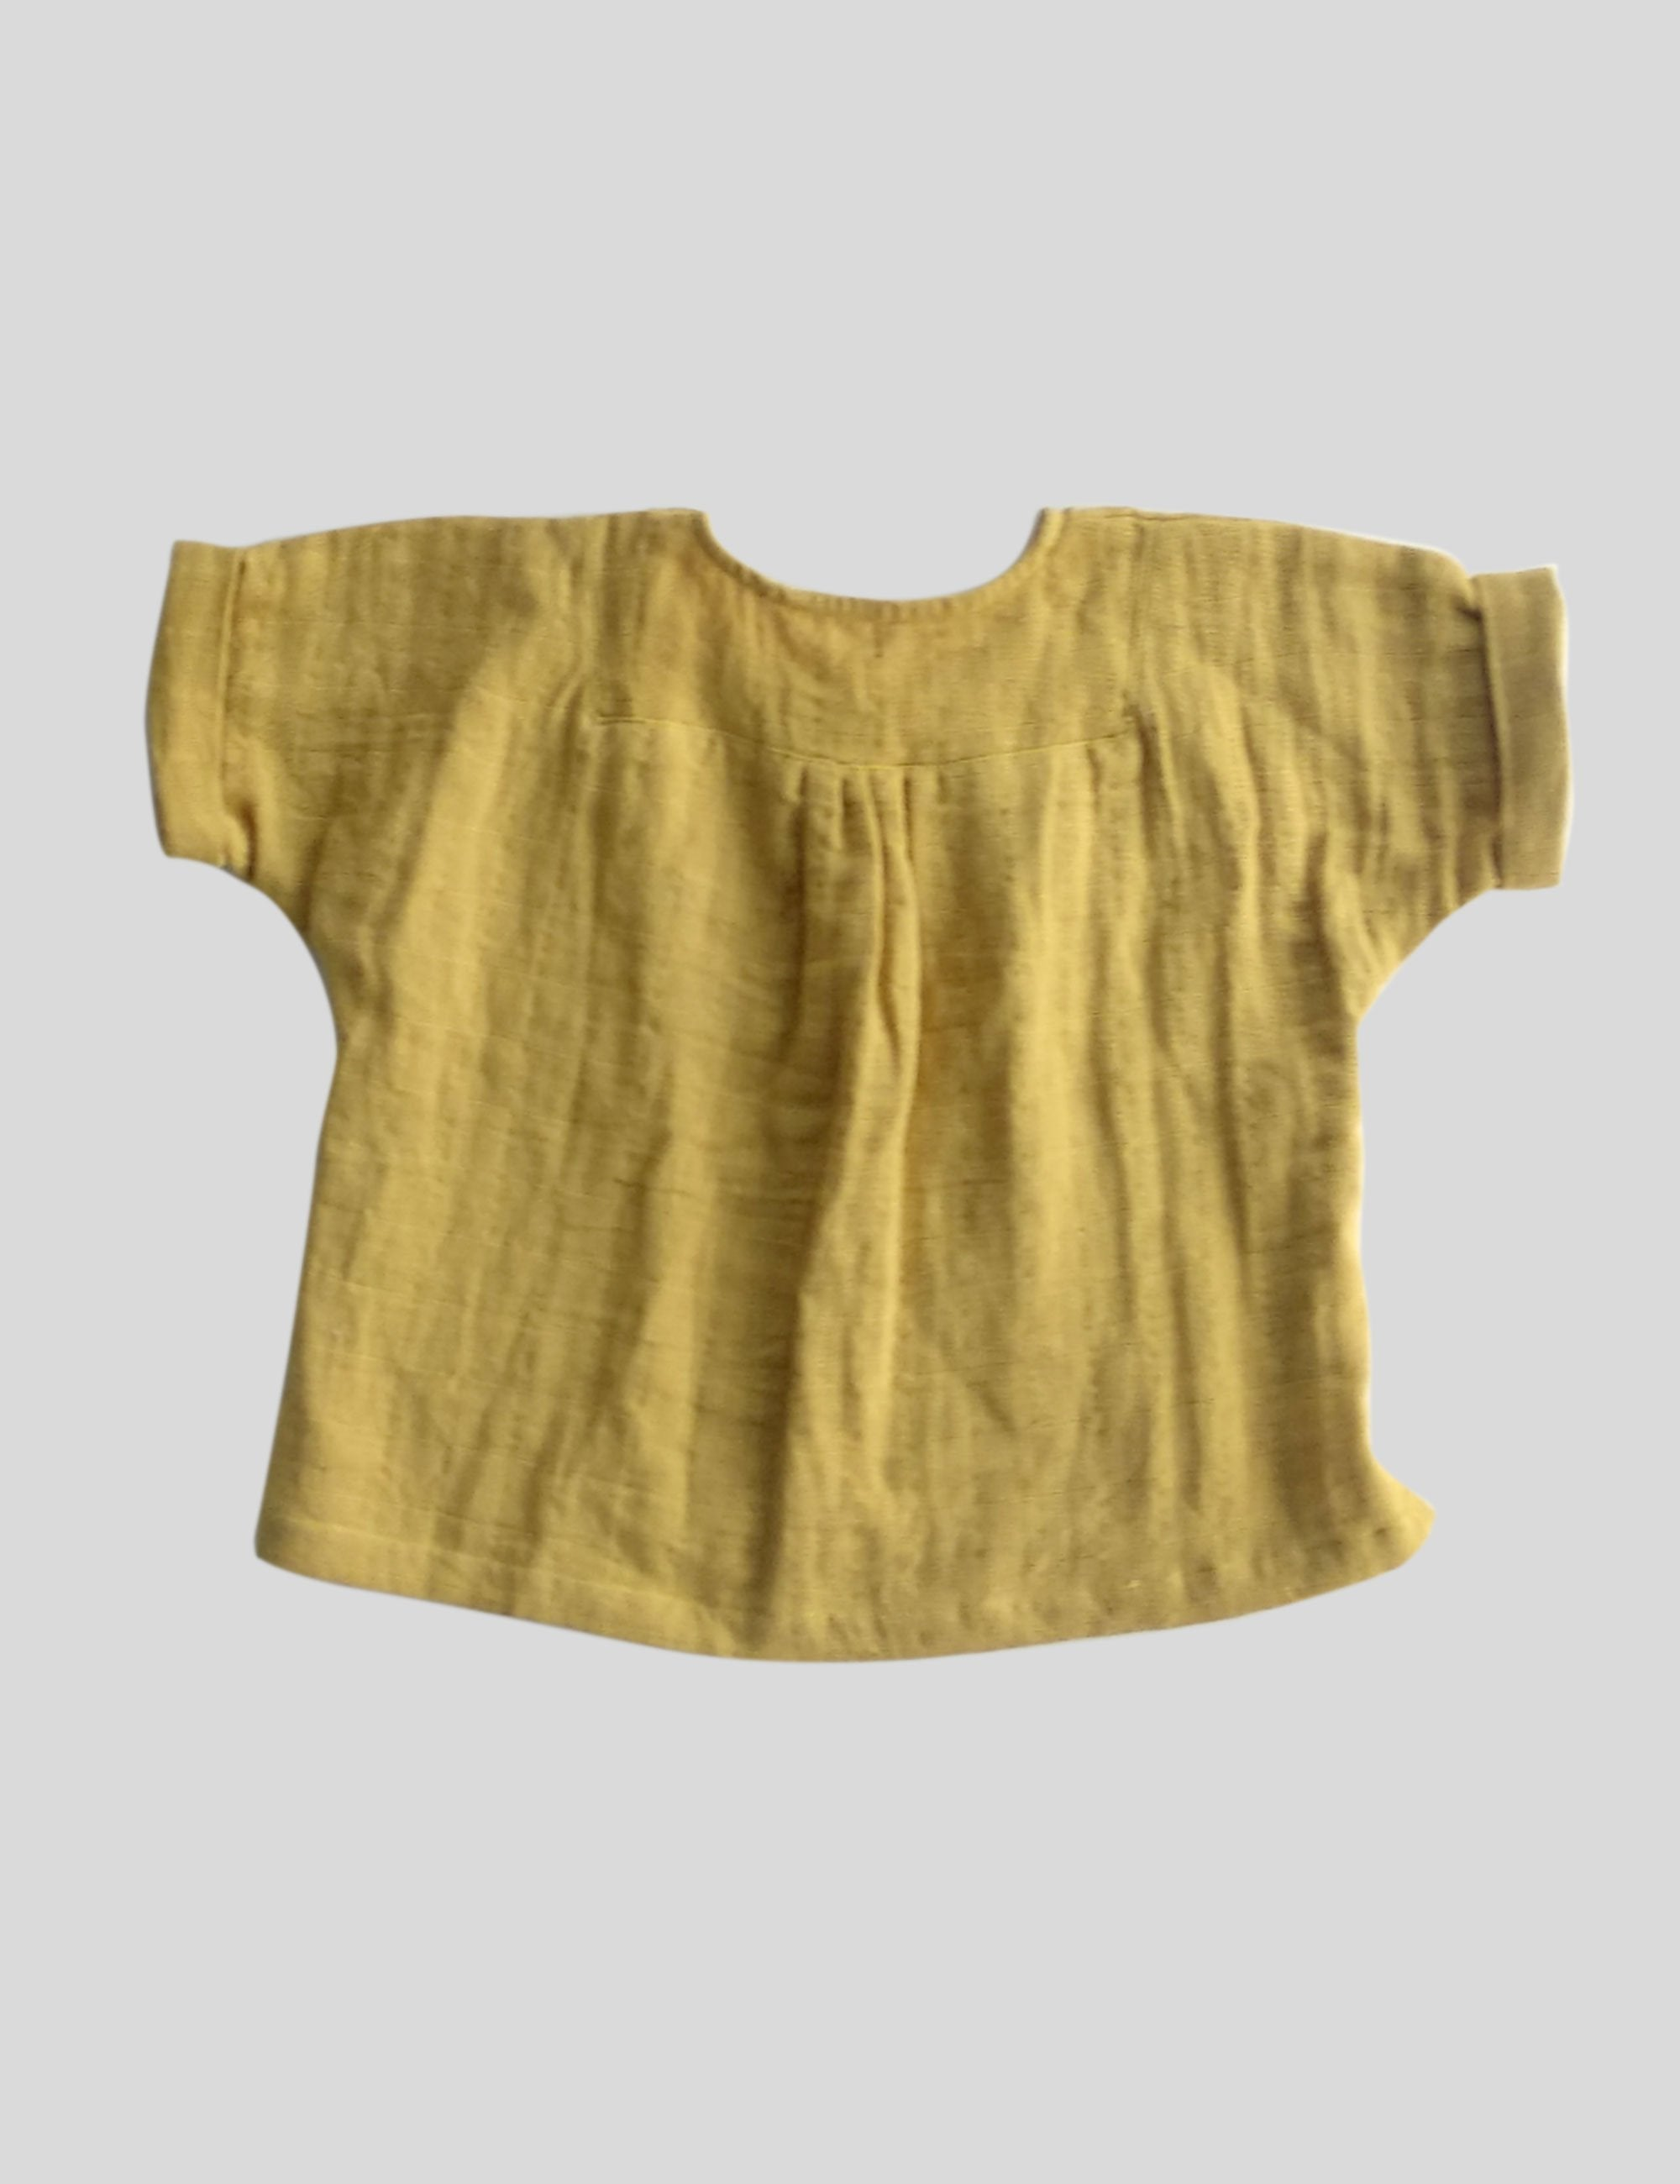 Loose Fit Afghan Tunic with Yoke in Yellow for Boys